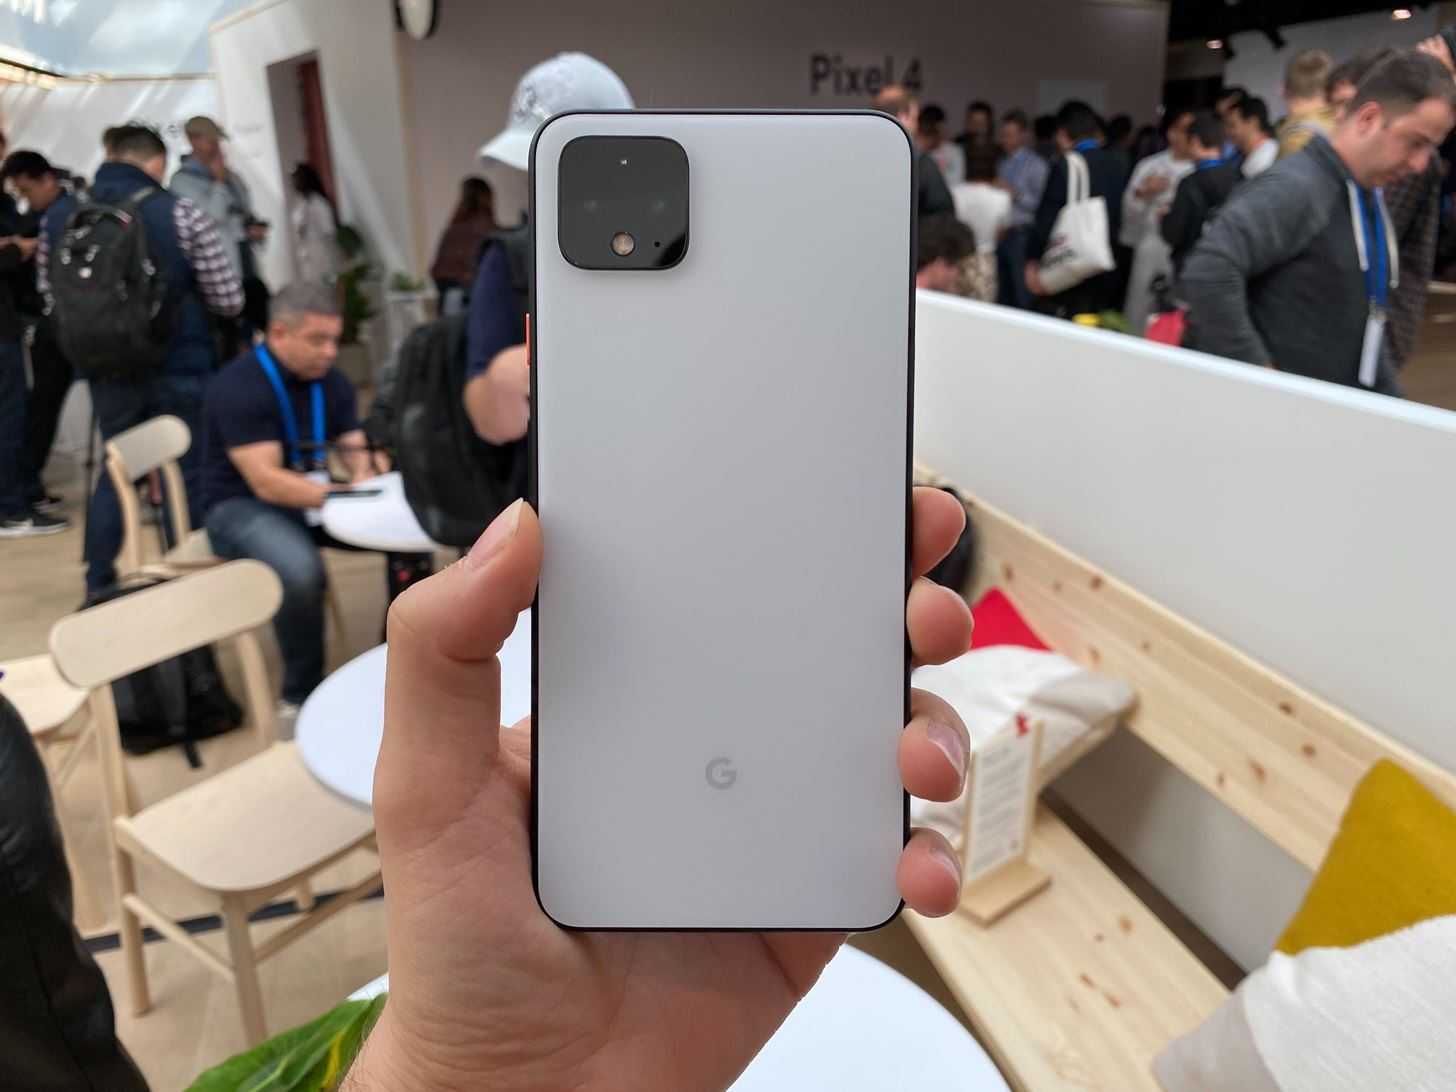 2 weeks with Google Pixel 4: Hands-on Review & More